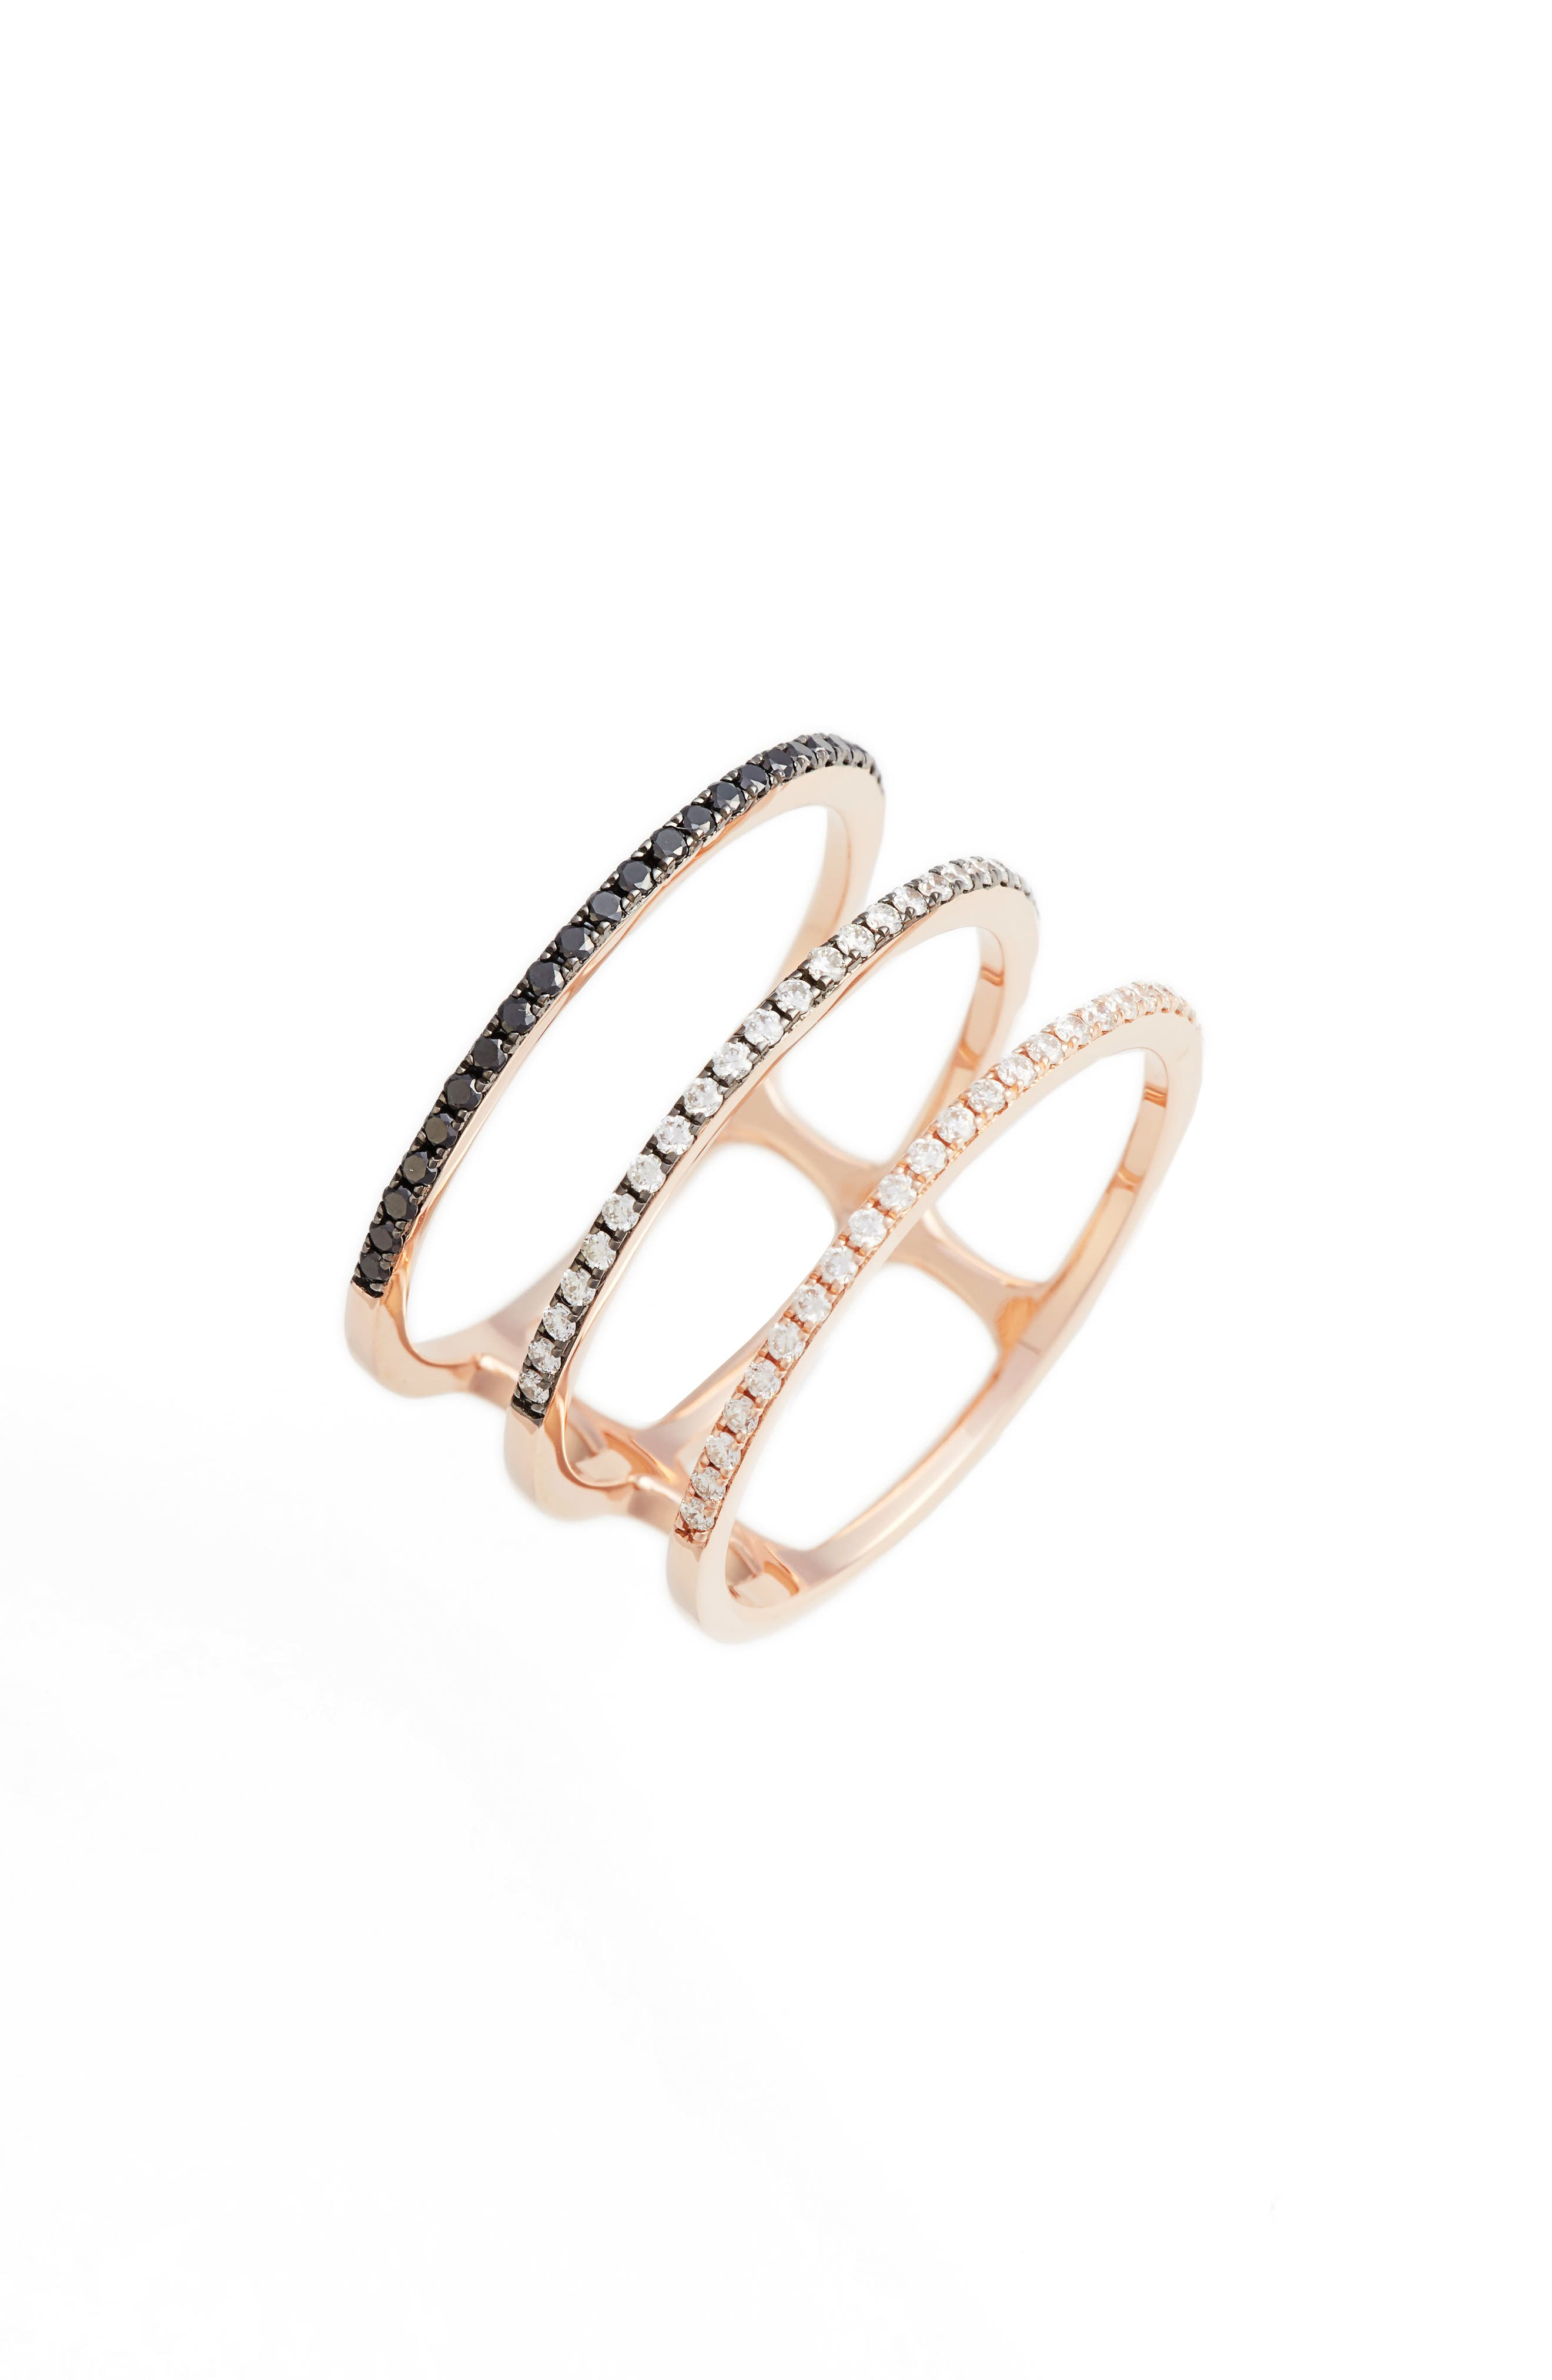 Main Image - EF COLLECTION Diamond Triple Fade Stacking Ring